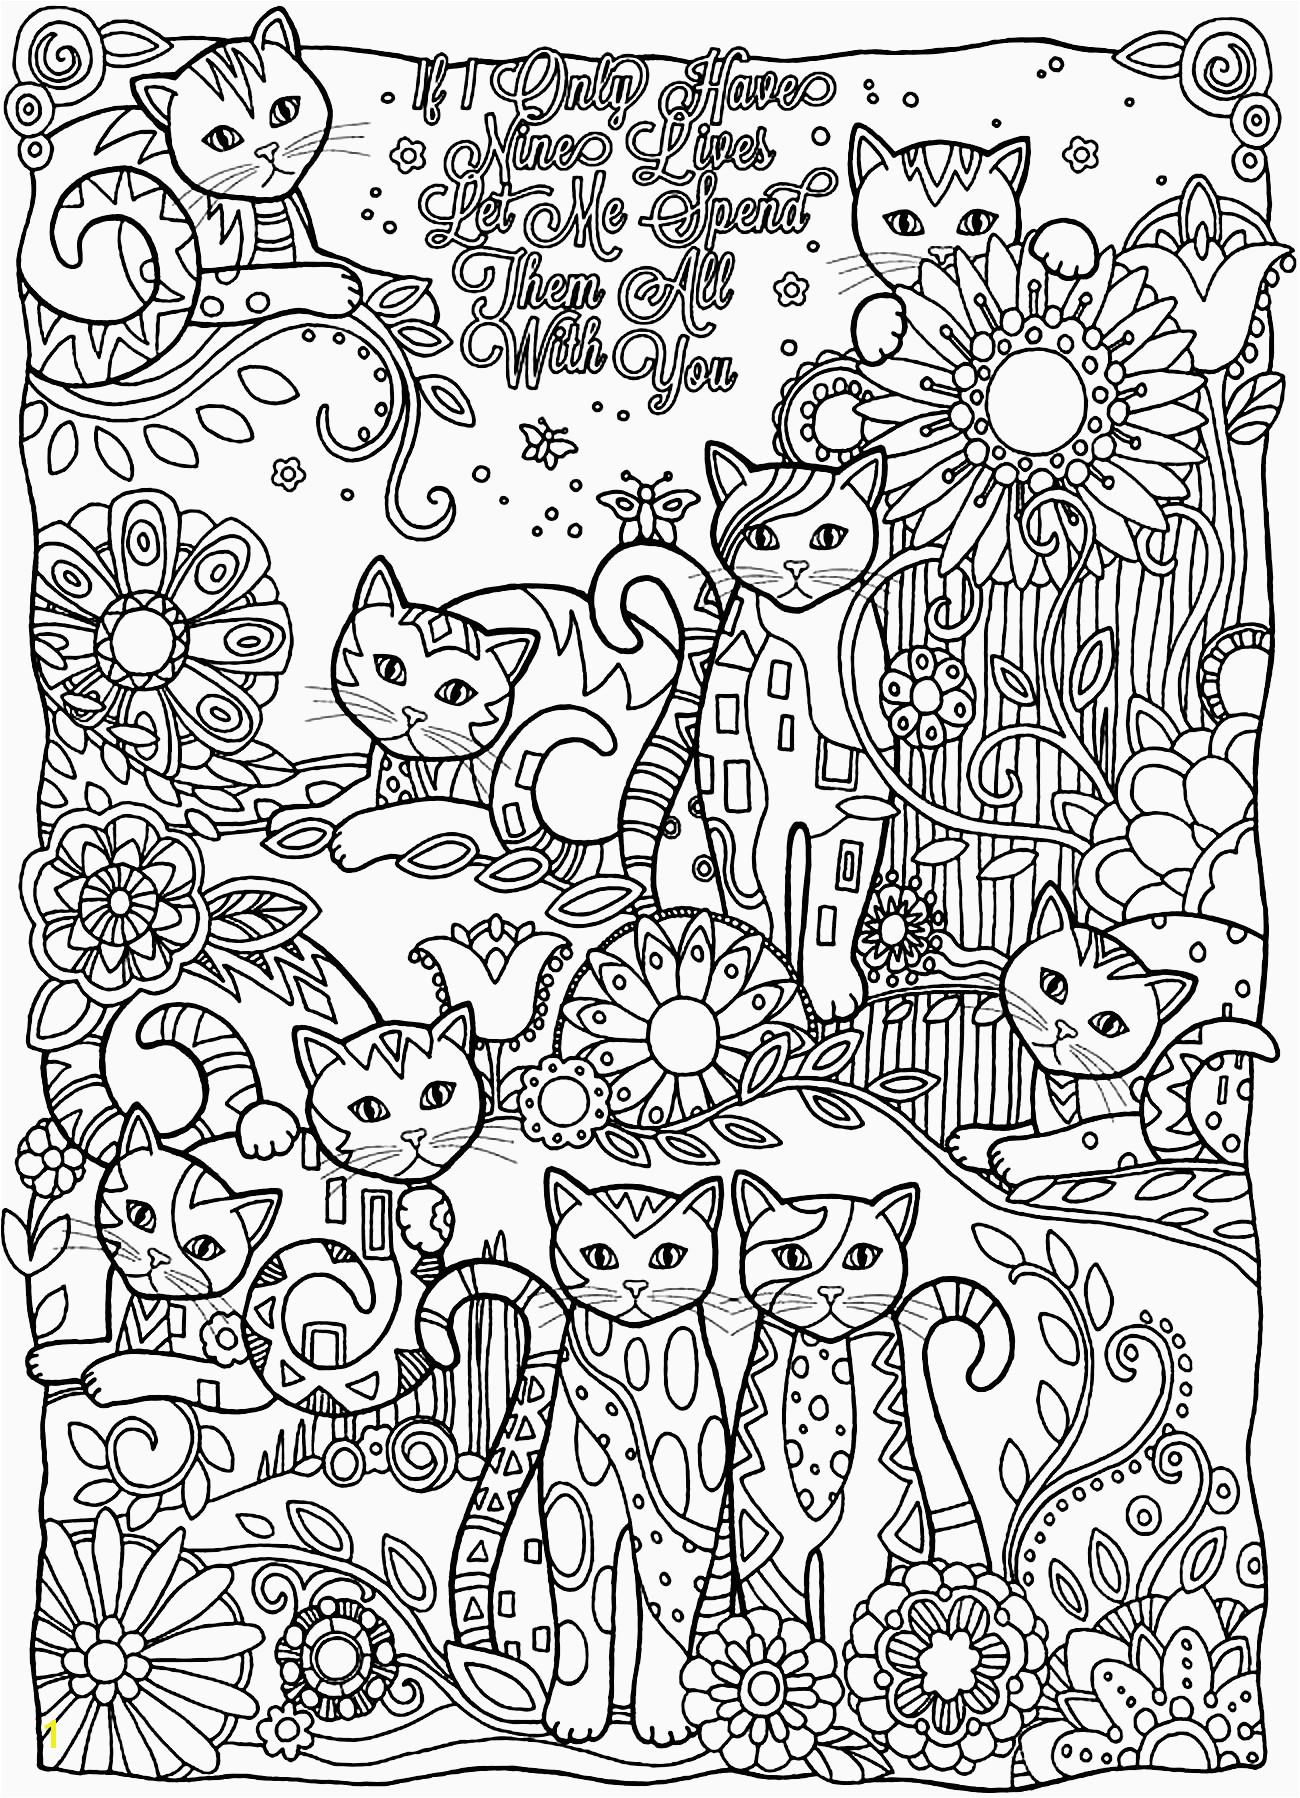 Wwe Championship Belt Coloring Pages Hello Kitty Printable Coloring Page Lovely Cool Od Dog Coloring